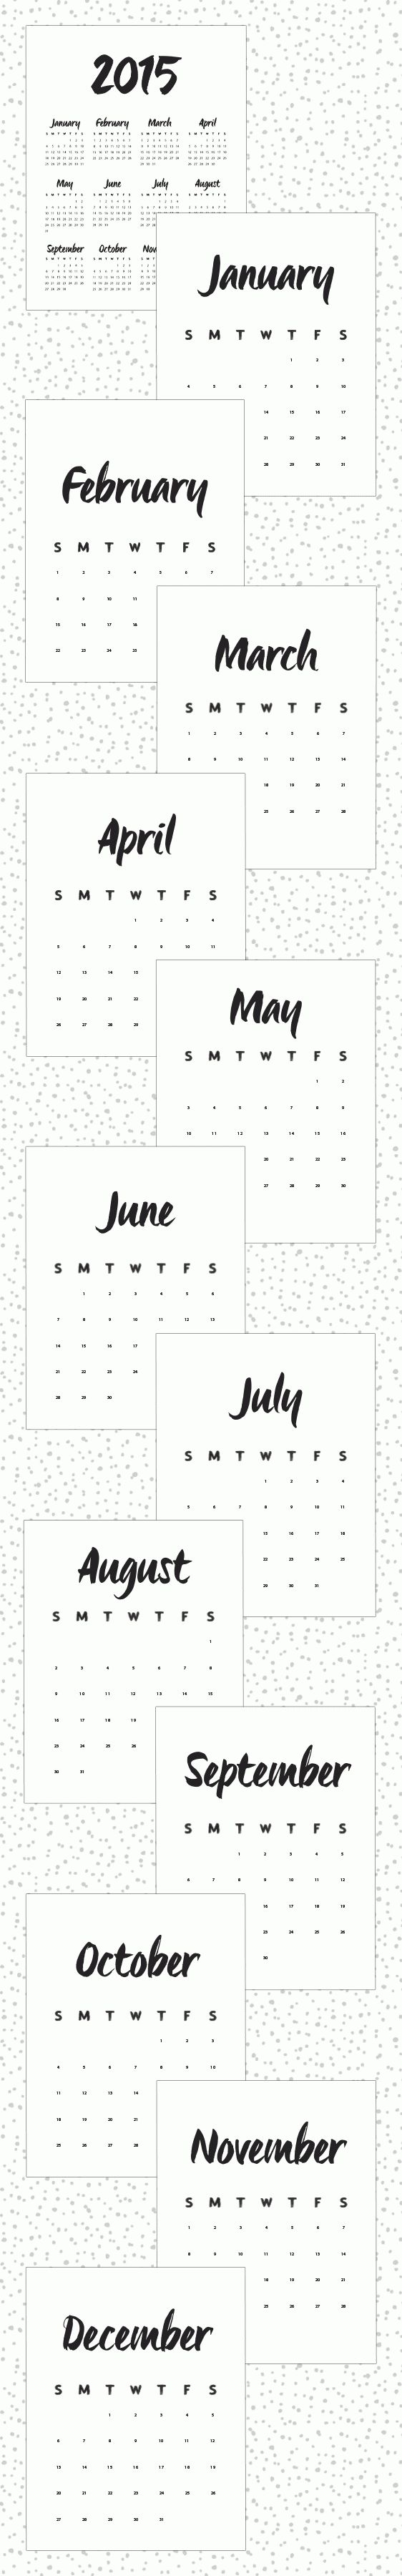 Minimalist Calendar 2015 : The best calendar printable ideas on pinterest